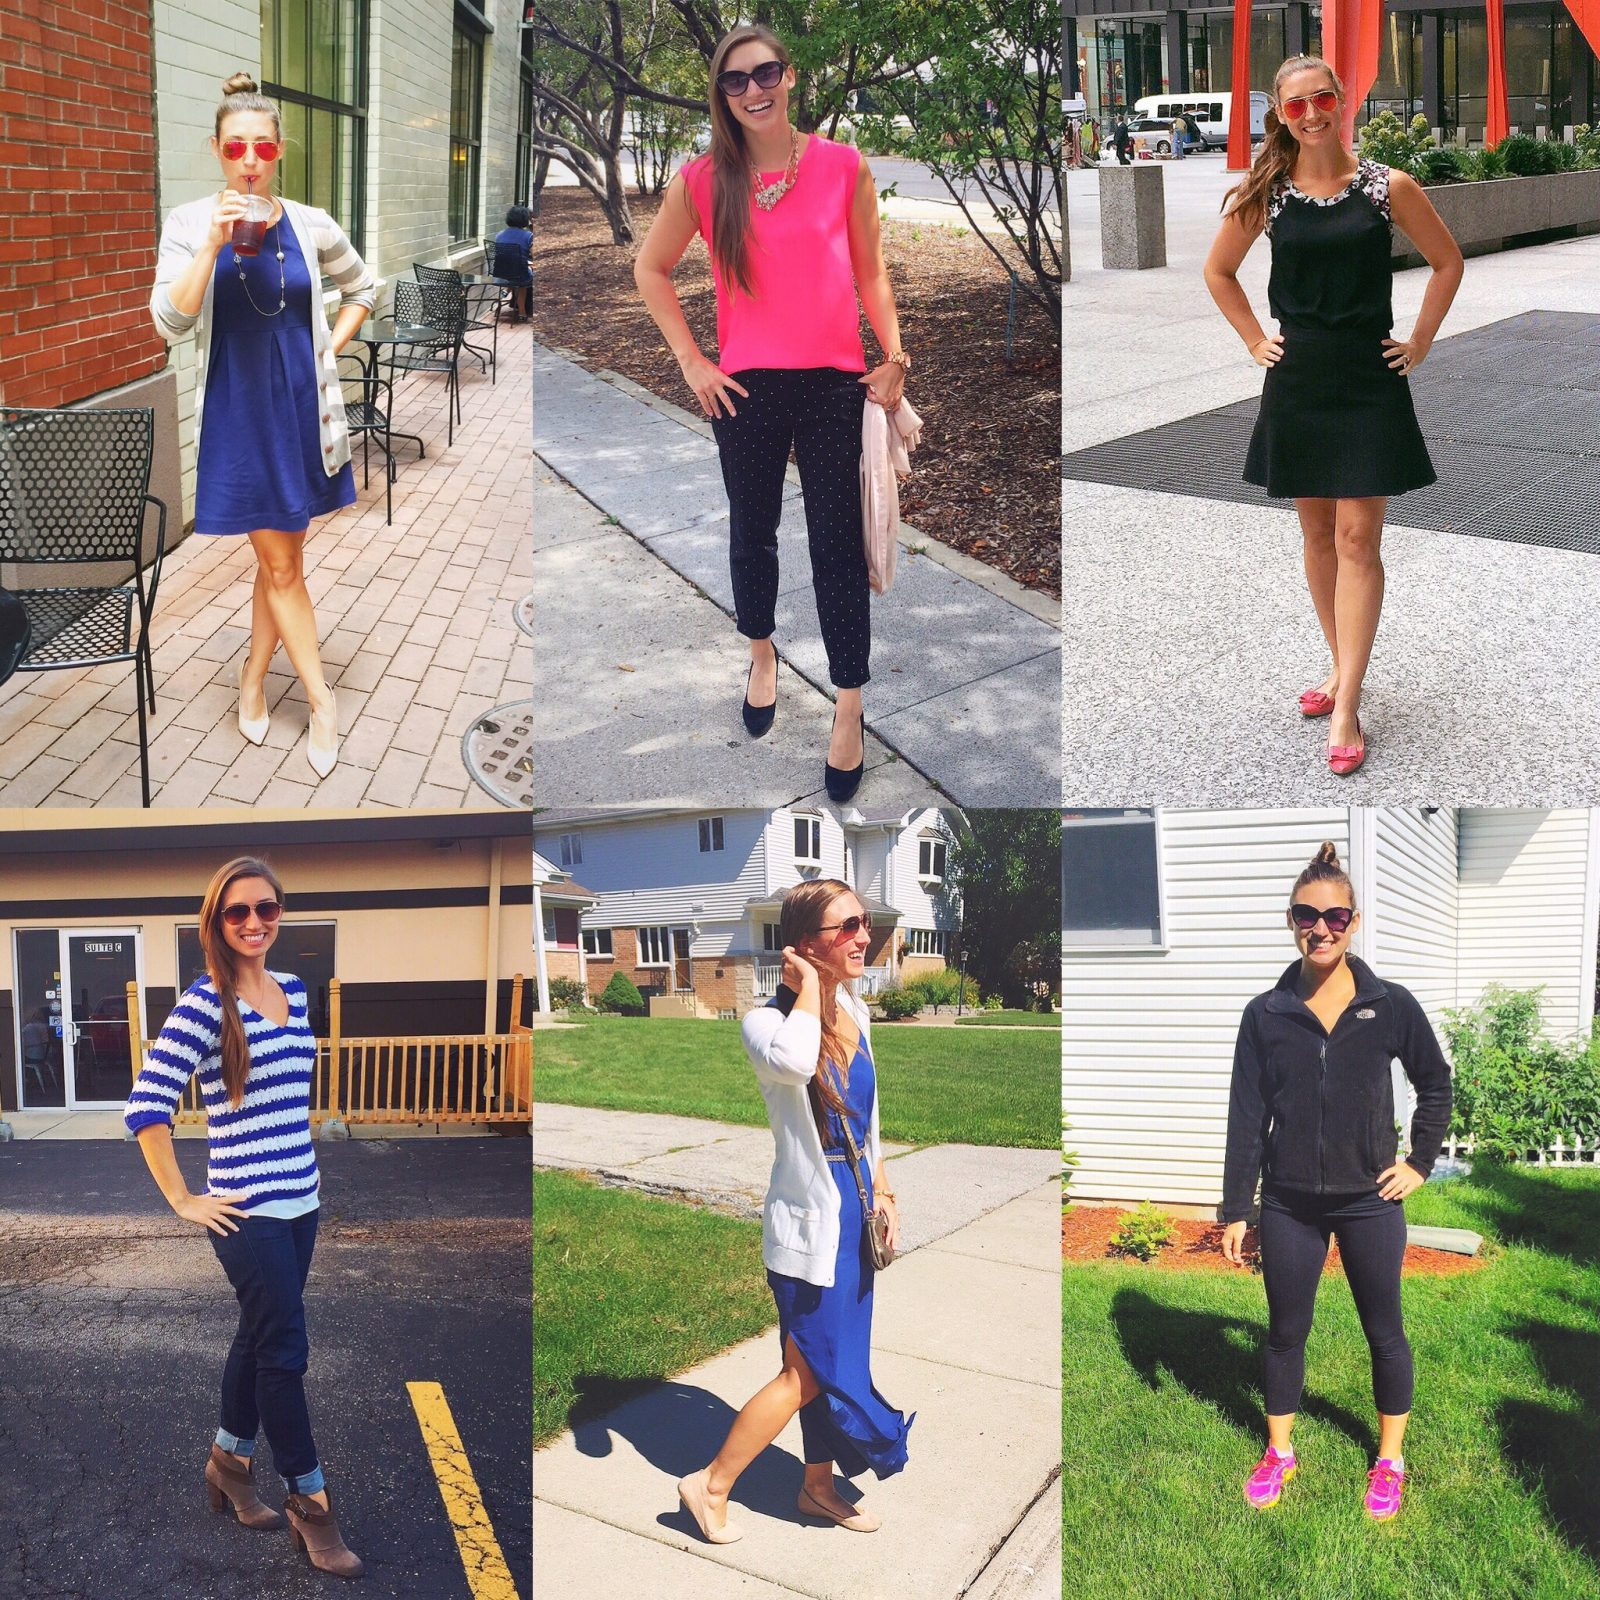 Summarizing Days 8 – 13 for the Wet Hair, Don't Care's 30 Day Outfit Challenge!